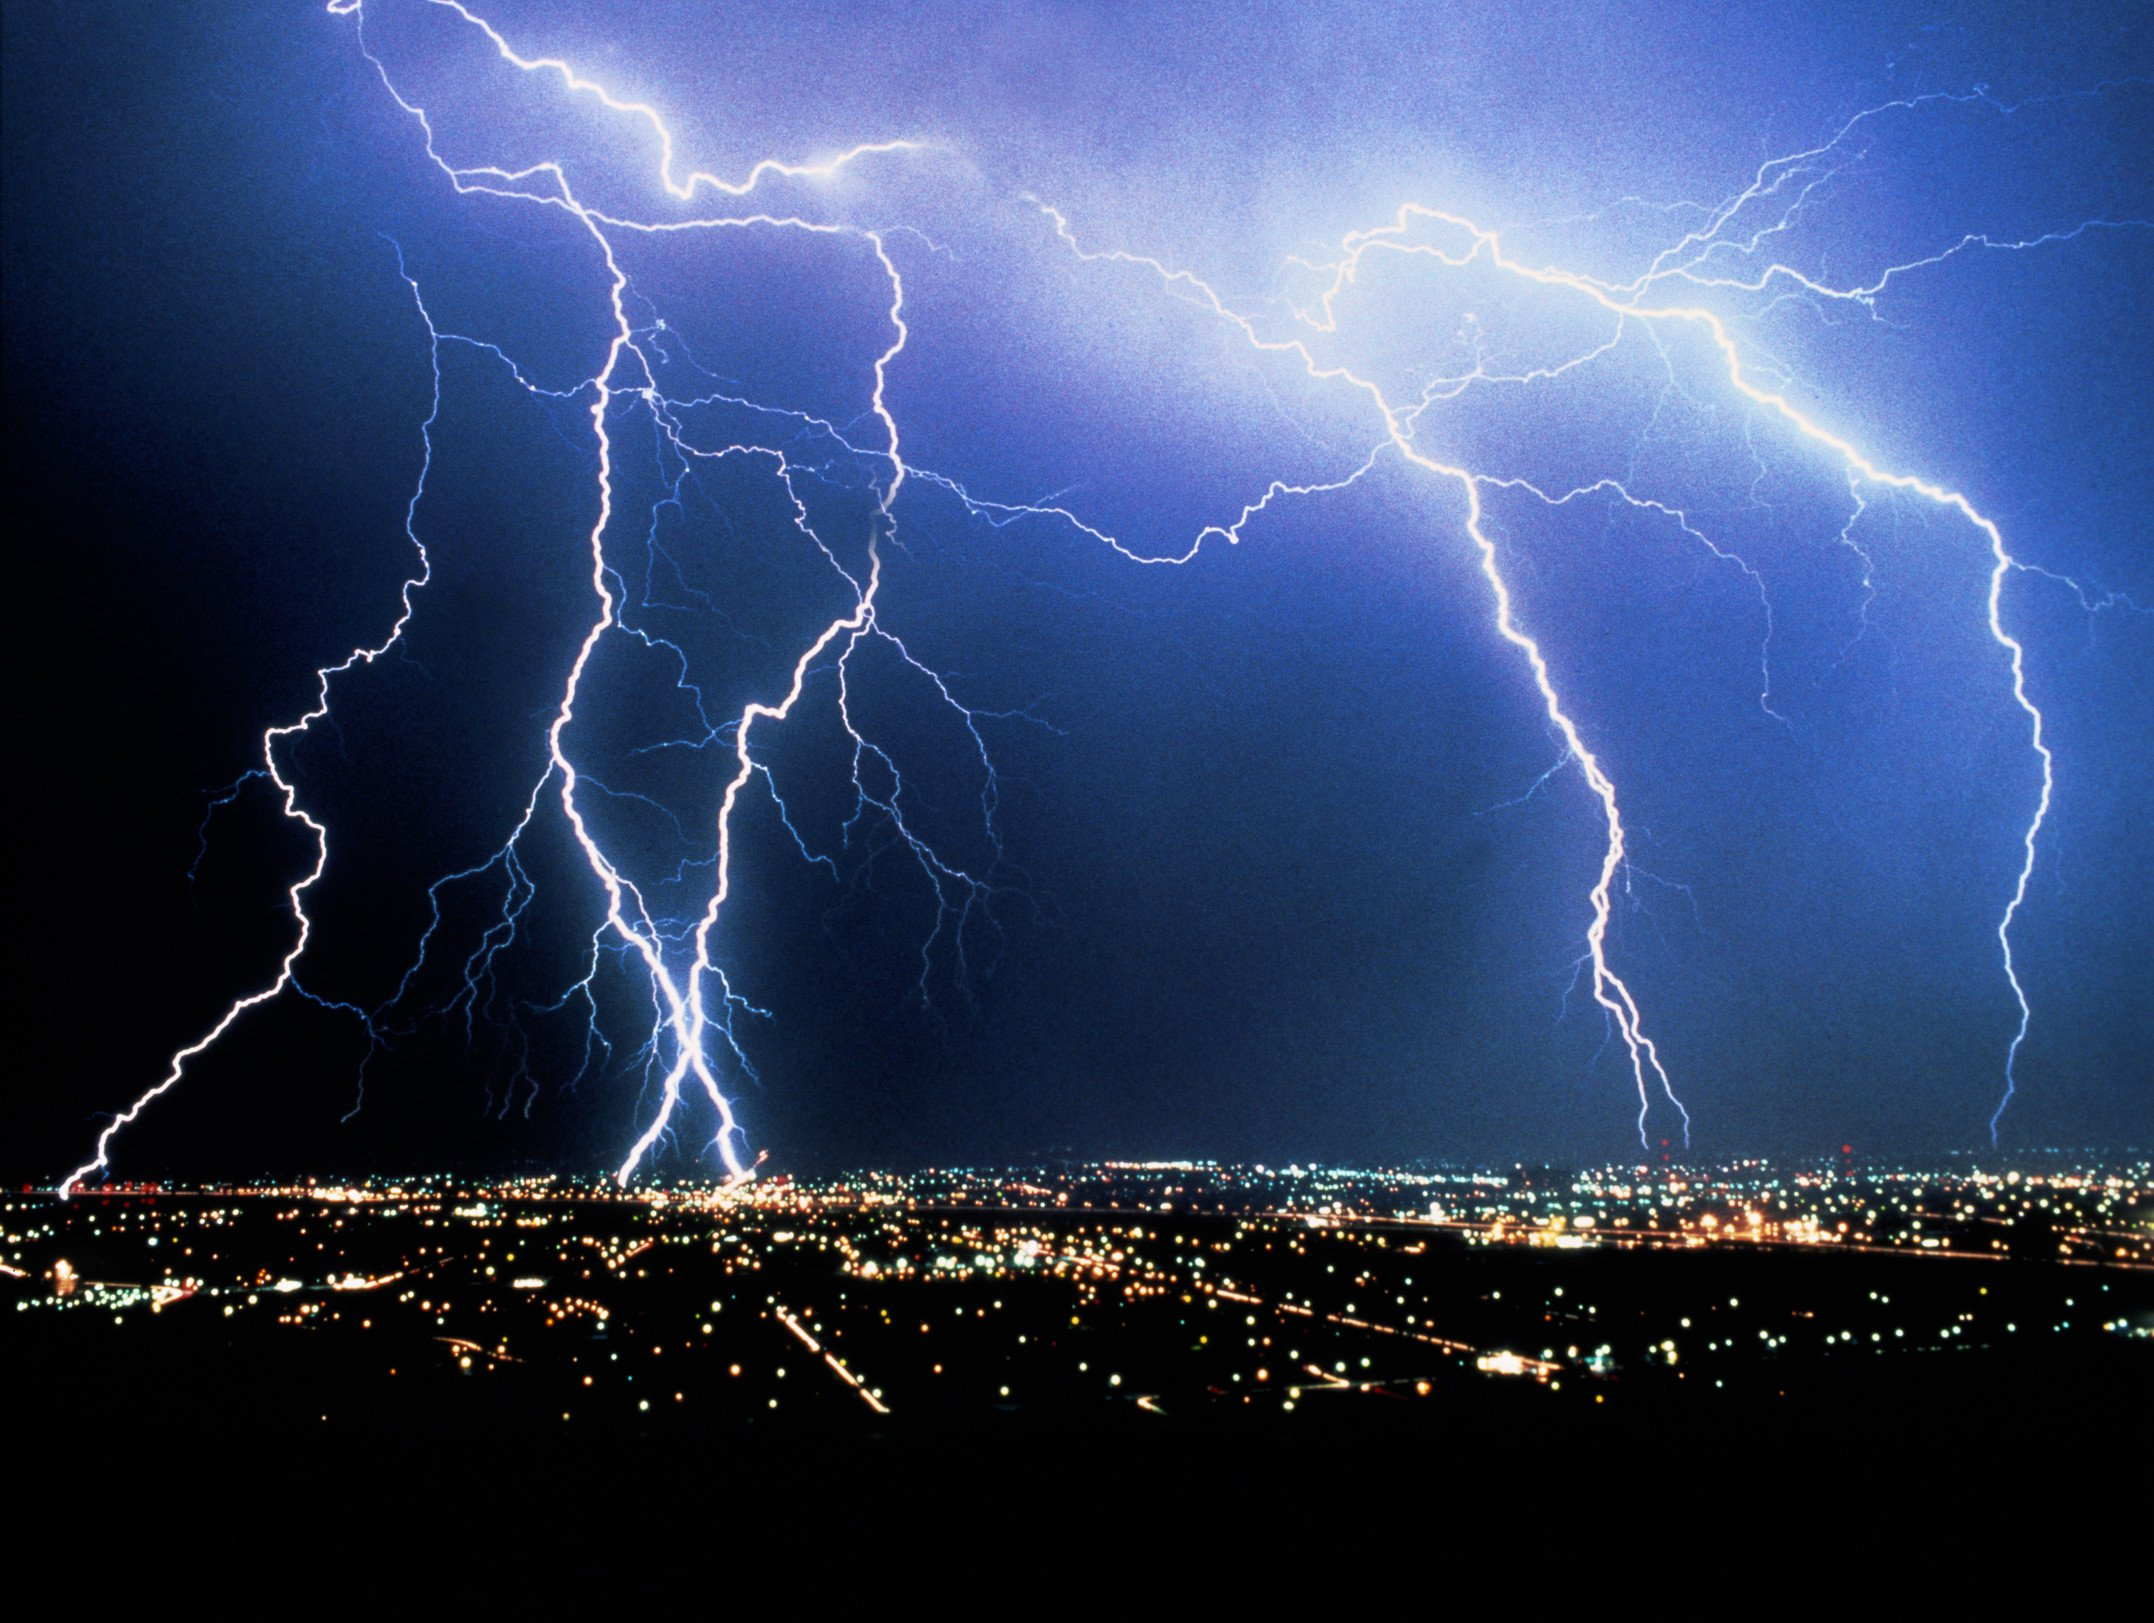 Physicists deliberately triggered electrical storms with laser beams because science getty